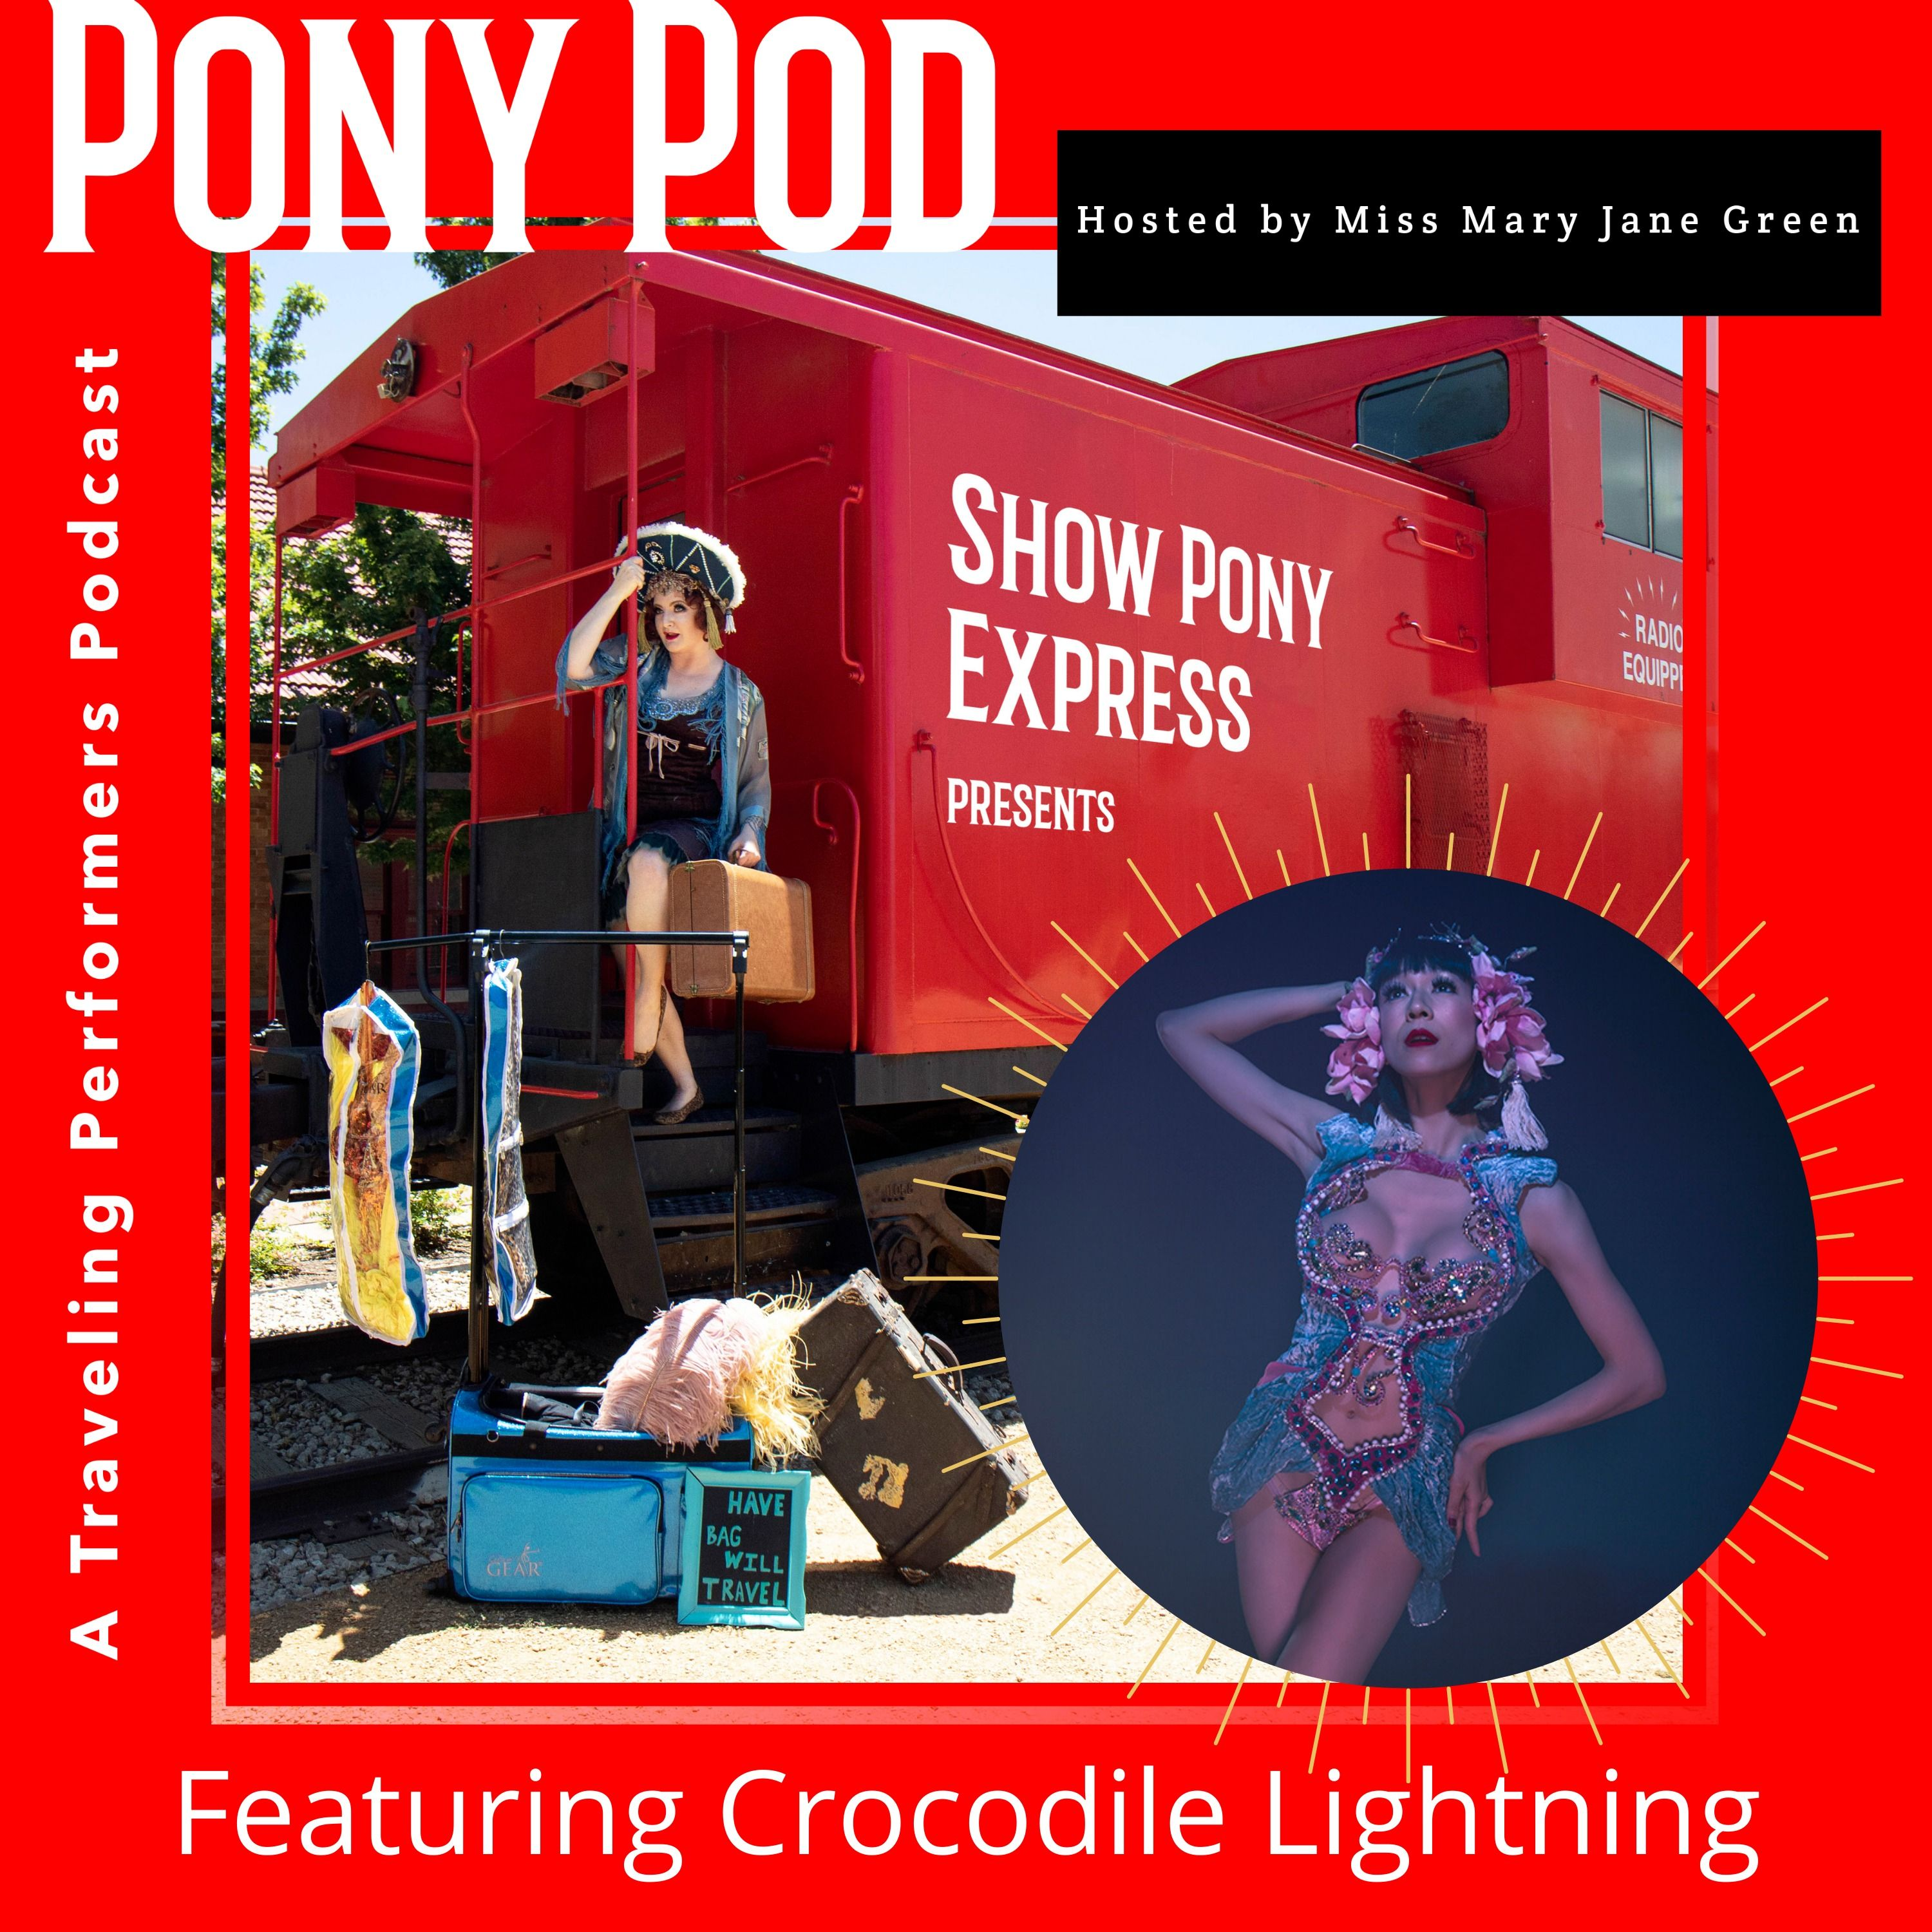 Pony Pod - A Traveling Performers Podcast featuring Crocodile Lightning